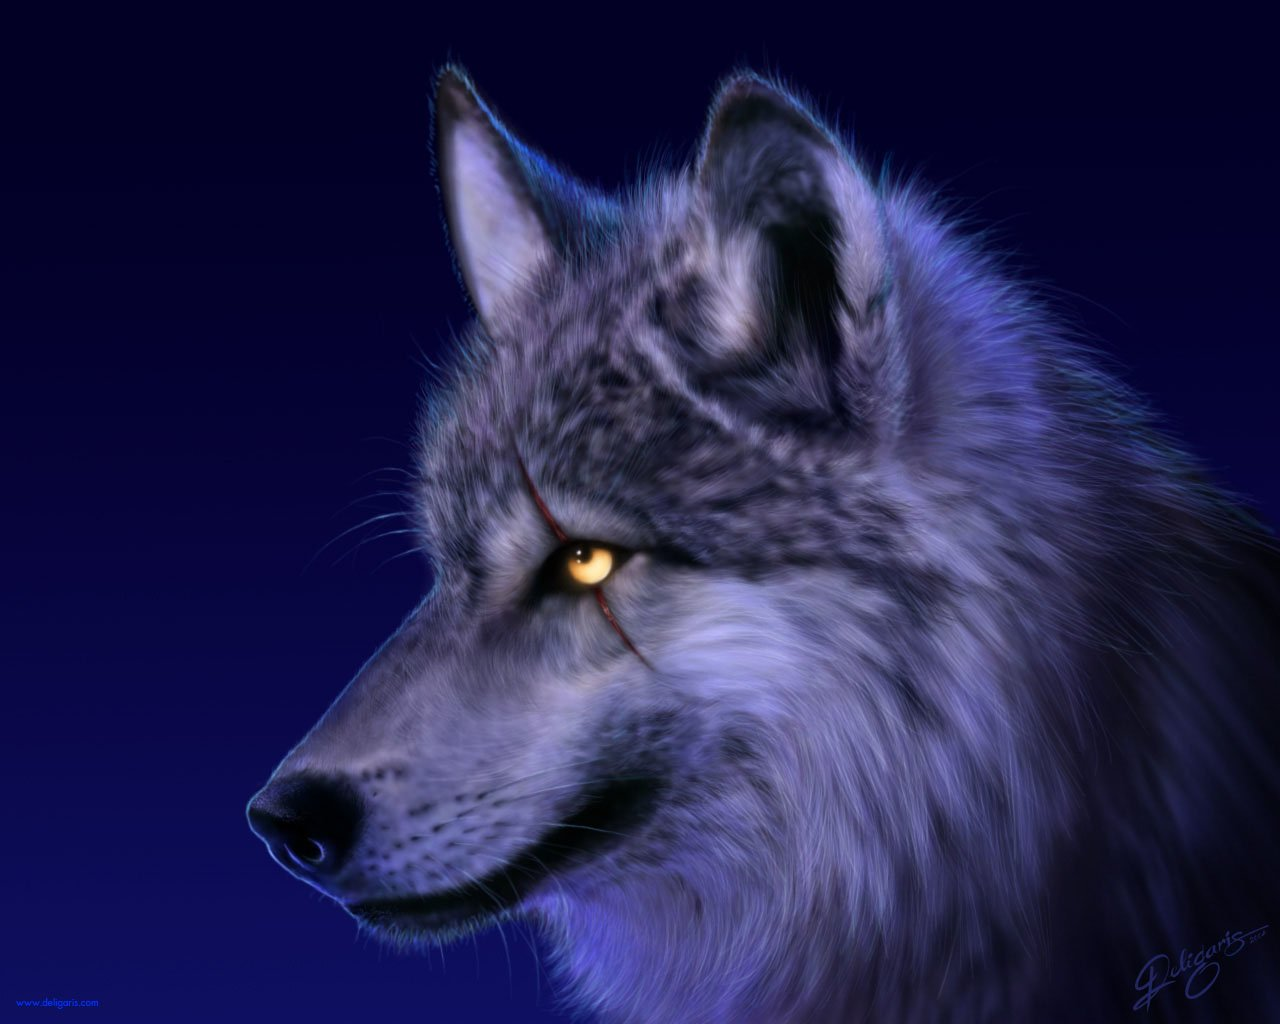 41617 Animal HD Wallpapers   Backgrounds - Wallpaper Abyss